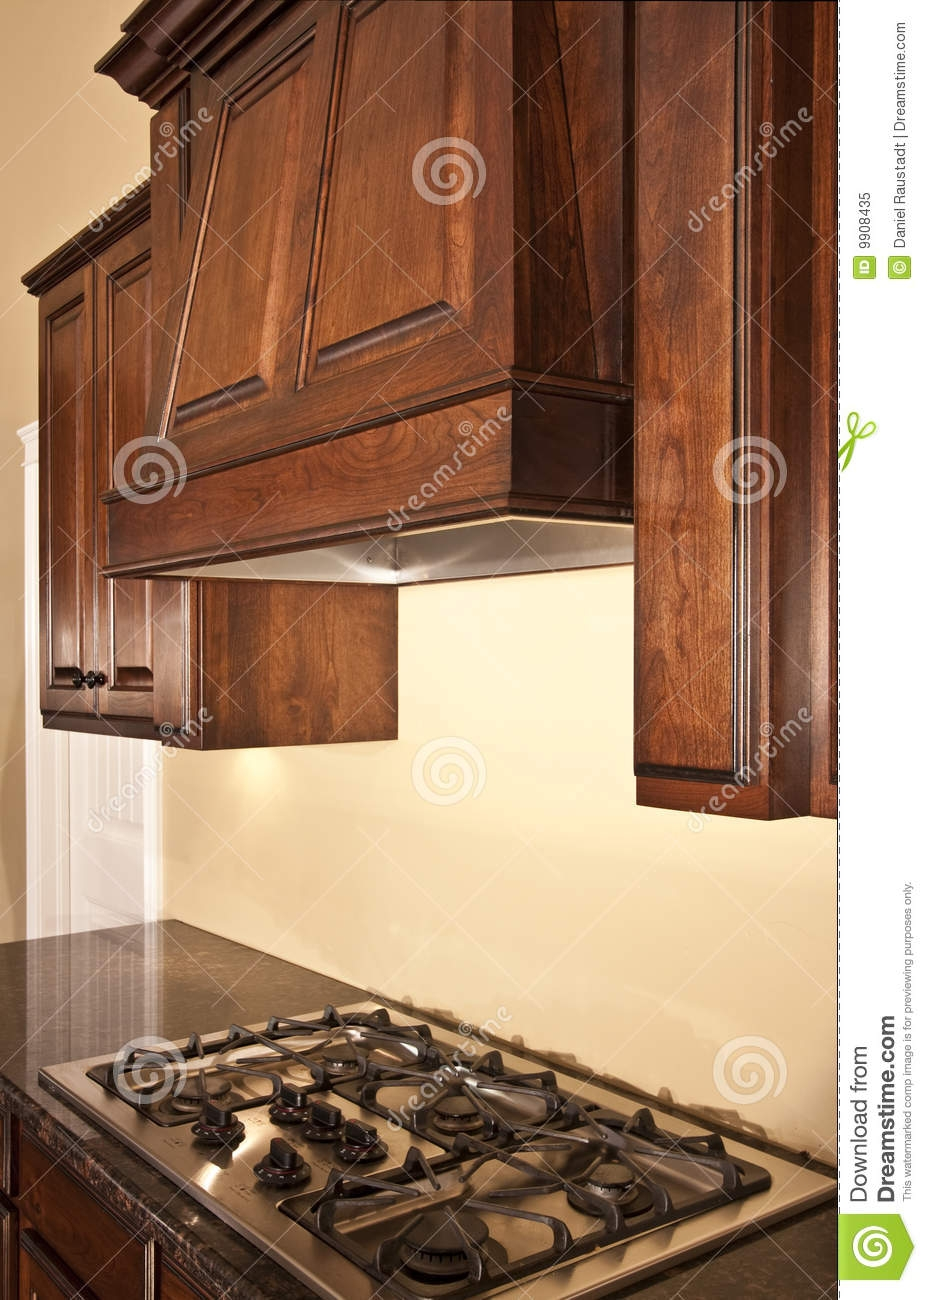 Kitchen Cabinet Stove Hoods